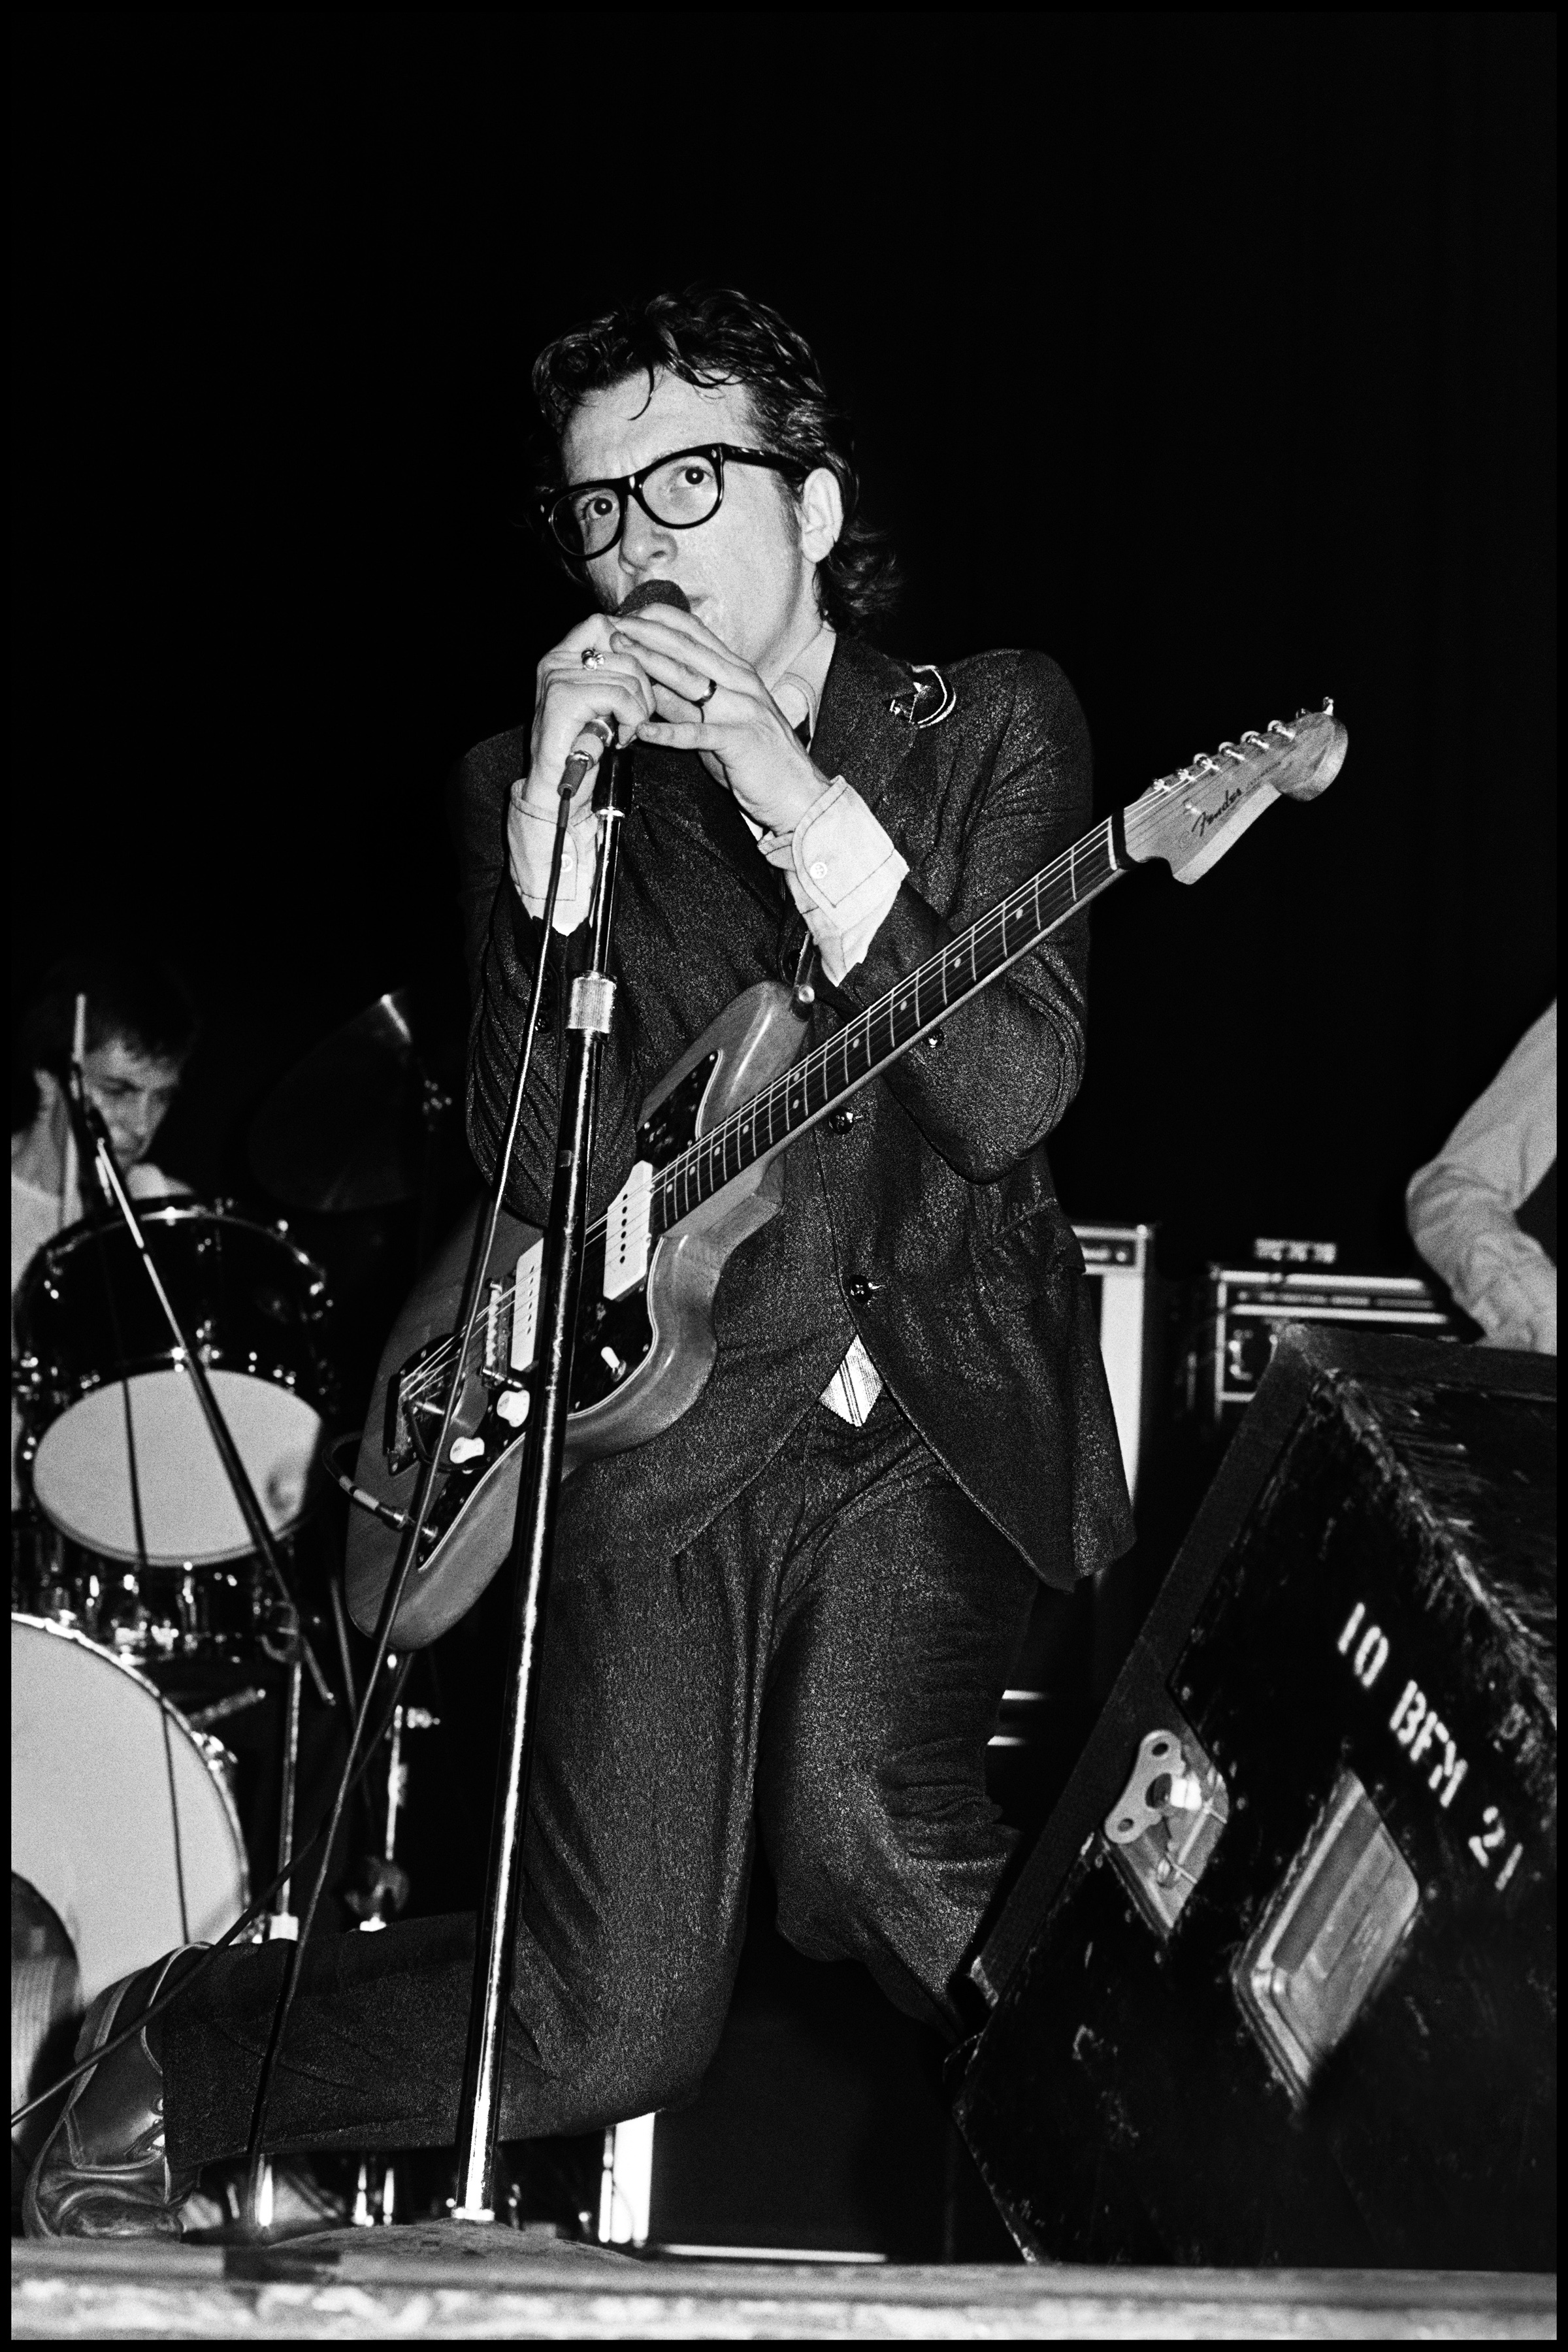 "Elvis Costello at The El Mocambo - Toronto 1978  My philosophy regarding live photography was simple, instead of wasting film, study the show on the first night, see where the best opportunities occur, then concentrate on getting the best photographs during those numbers the following night.  Given that Elvis was playing the El Mocambo, a small club in Toronto,it meant using flash, and that meant taking as few pictures as possible.  I saw that during Less than Zero and Watching the Detectives EC gave his most animated and manic performances. Not only that, he dropped to his knees in Detectives just after singing ""she's painting her nails as they're dragging the lake"" and my aim was true, it was to catch that particular moment.  I waited patiently and caught him right on cue, I was mighty happy with myself, but his manager was not happy with me.  Whilst accepting that Elvis did this every night Jake did not want the public to know, he wanted each audience to think it was spontaneous, so he told me quite bluntly that I could not use the photo.  I reluctantly agreed, because I could see the logic behind this decision, it was strategic in nature and I respected that. Jake respected me for agreeing and from that day on gave me total access to EC whenever I needed it.  So I waited thirty five years before making it available, to me it sums up those early years perfectly."